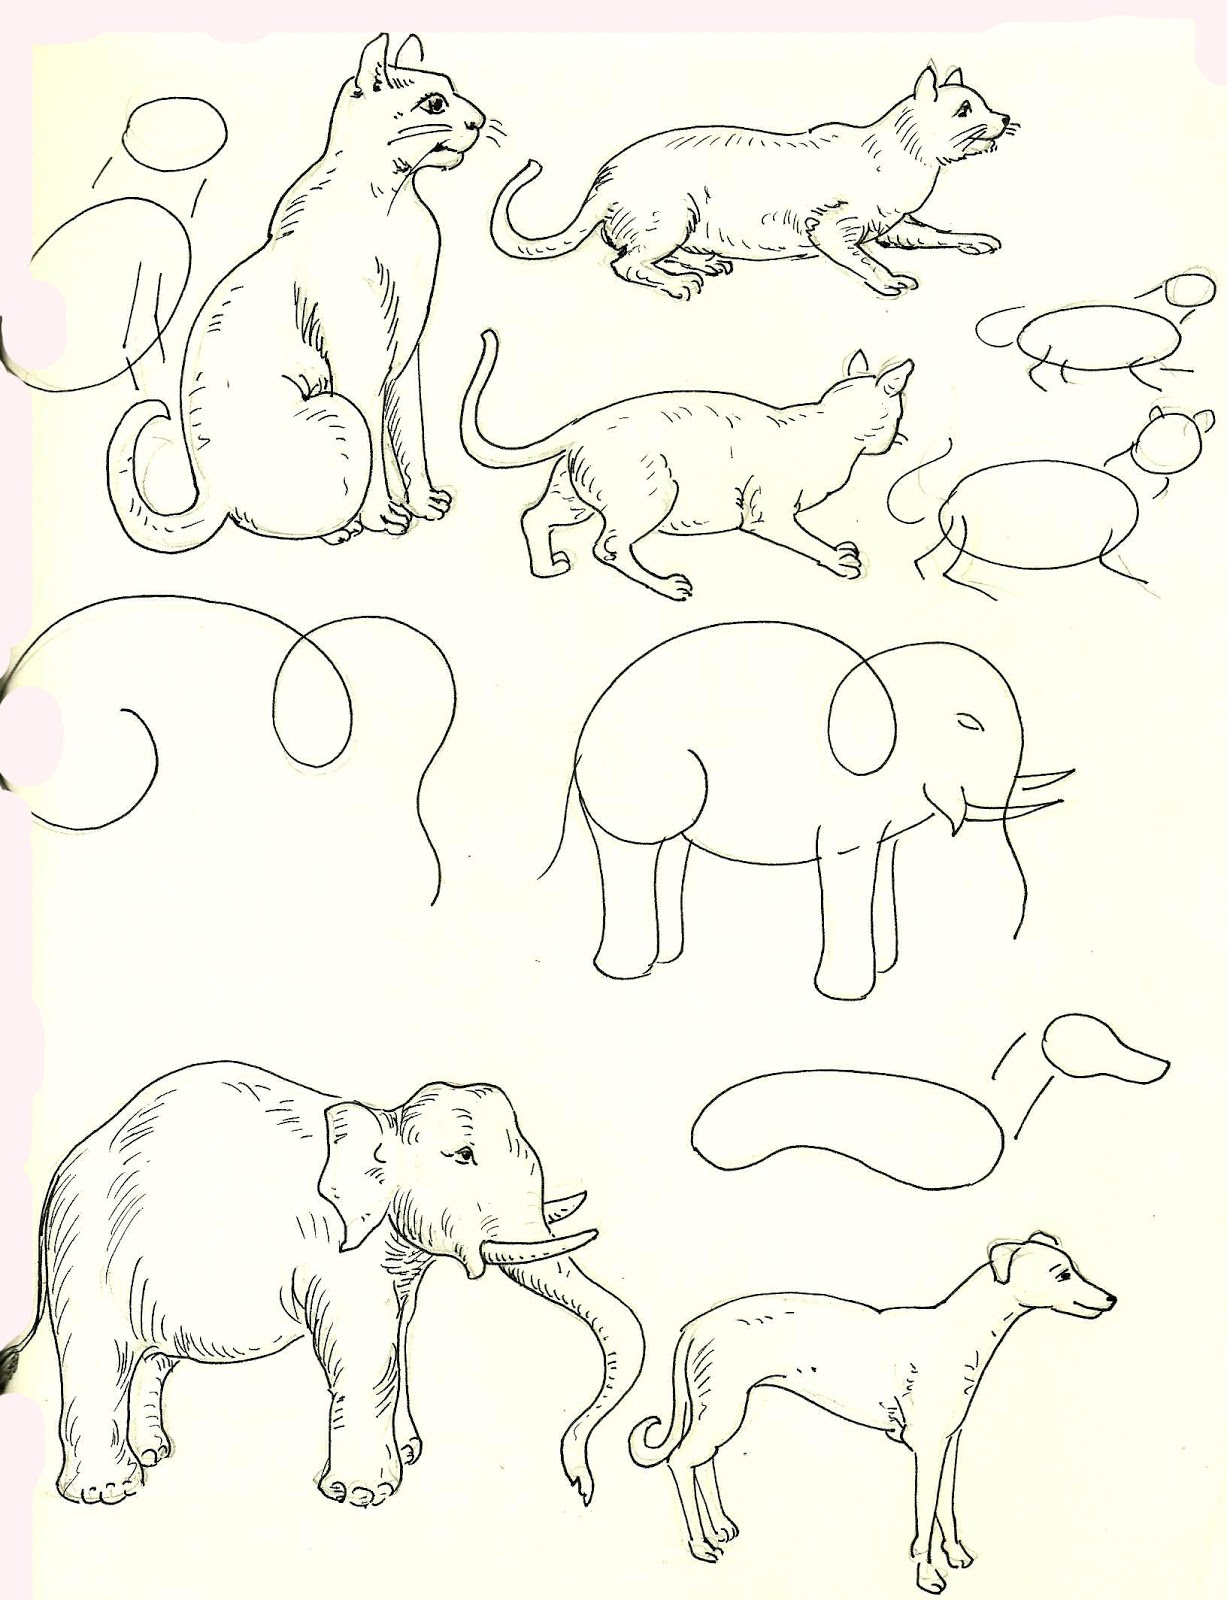 Studentsdrawing Animal Step By Step Easy Outline Drawing Elephant